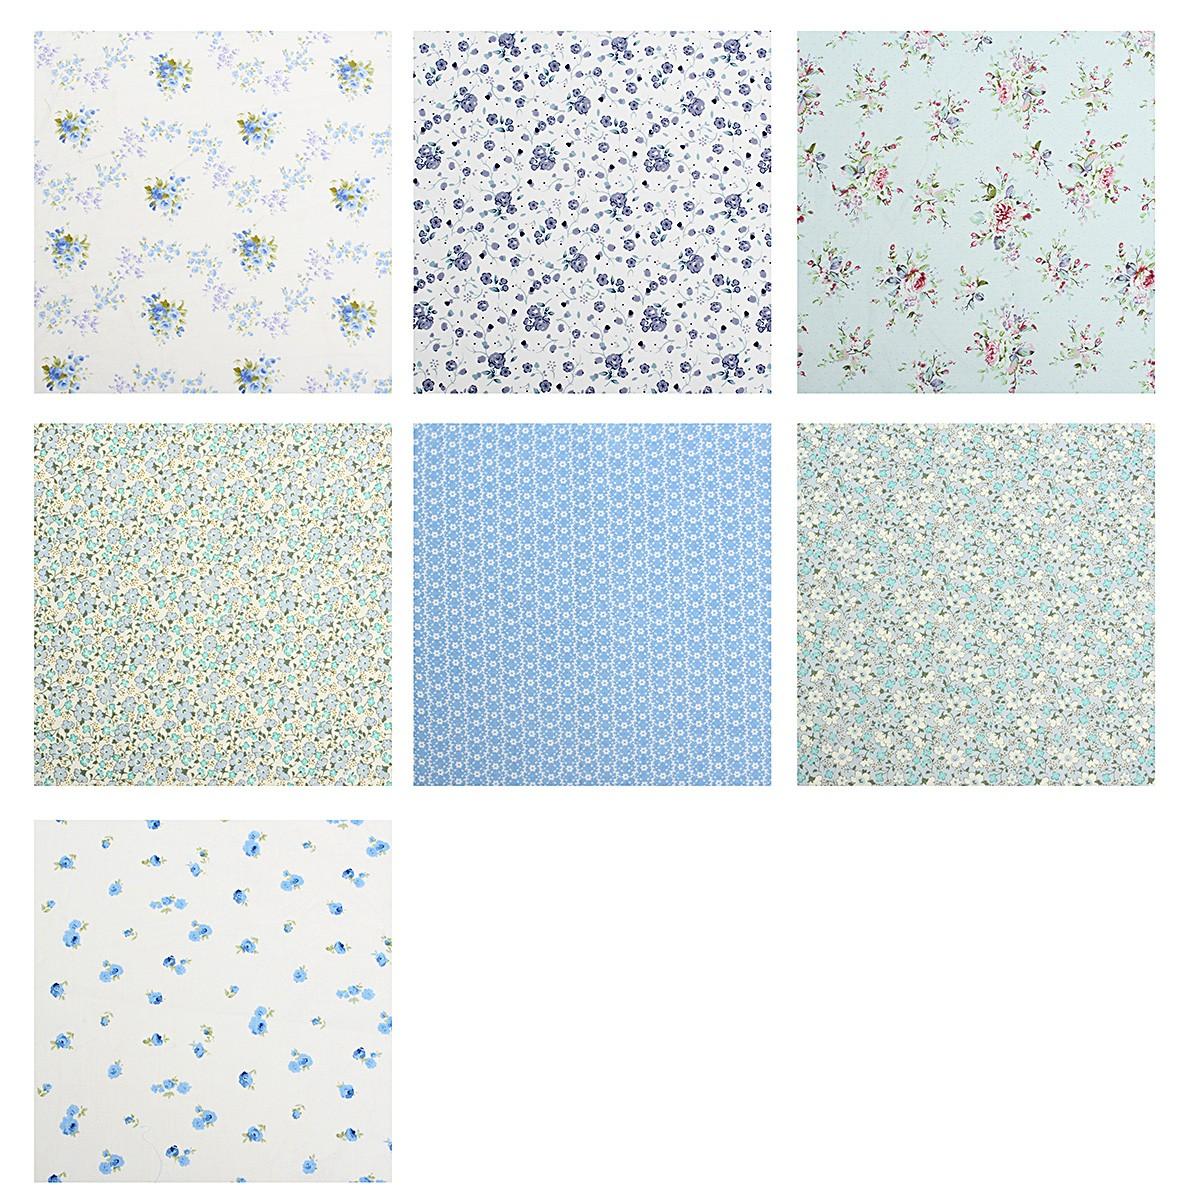 Floral Print Quilting Sewing Cotton Fabric Handicraft Fabric